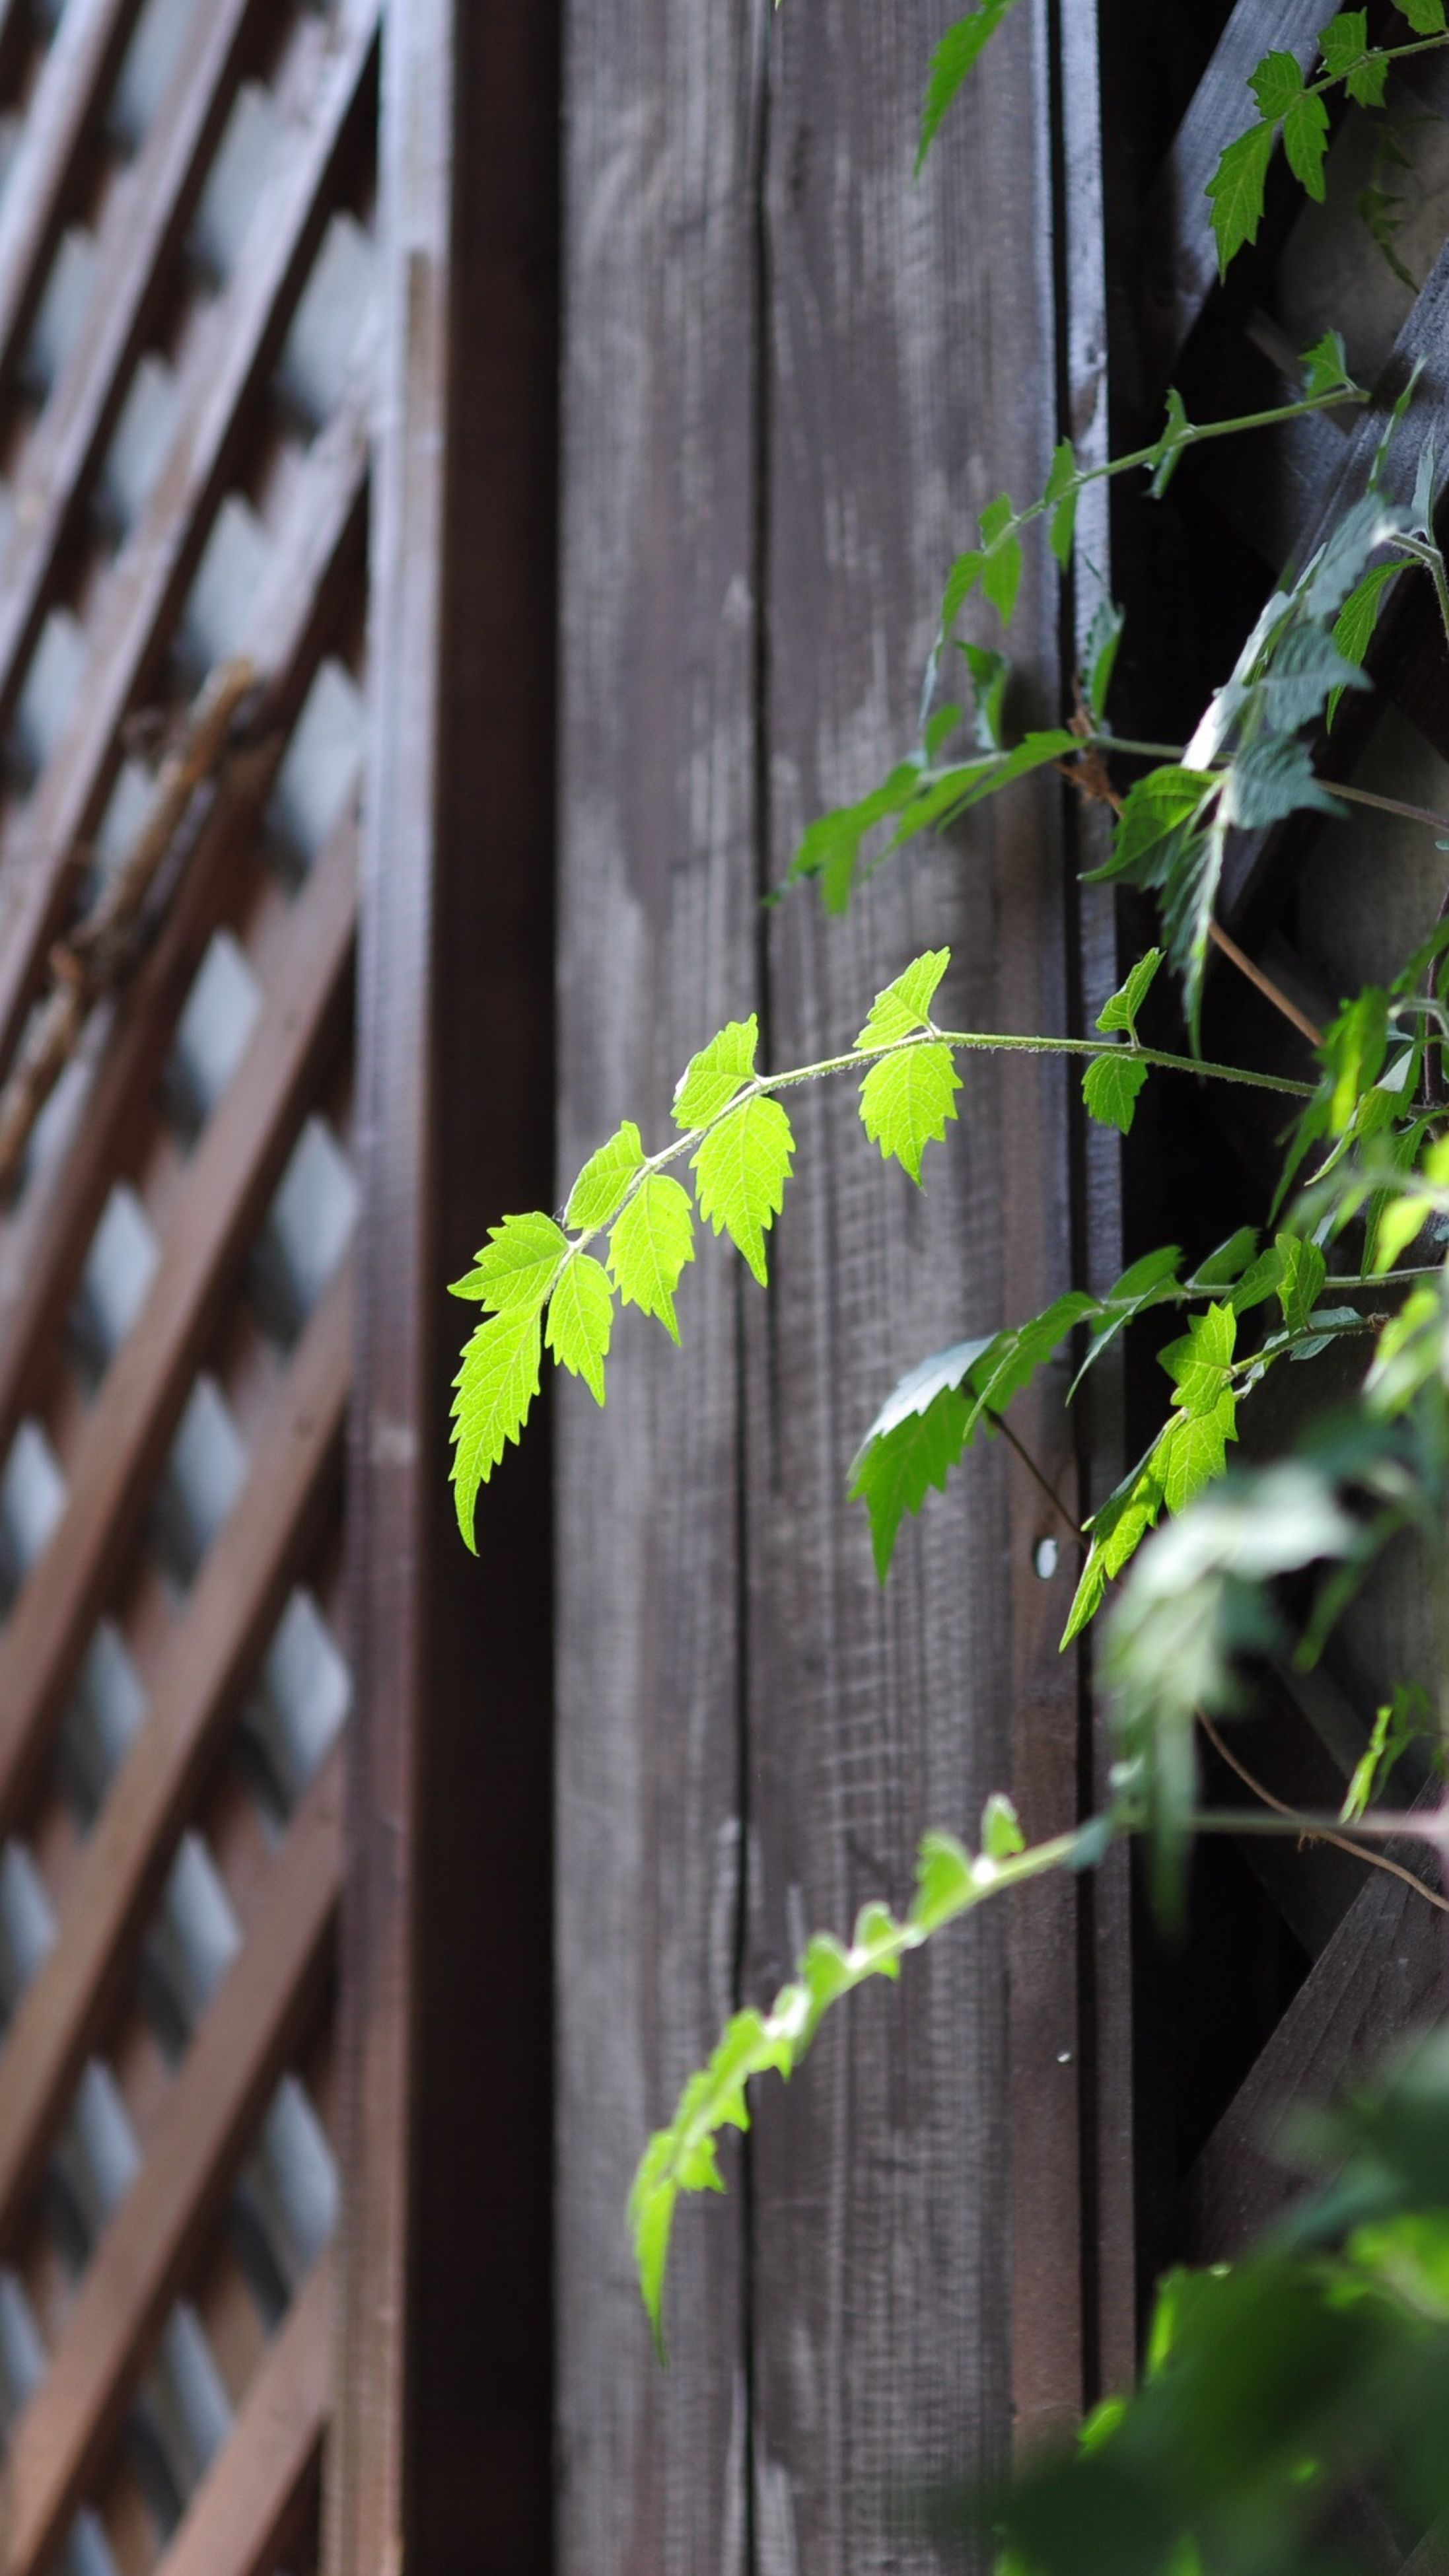 green color, growth, plant, leaf, close-up, fence, focus on foreground, ivy, nature, growing, built structure, protection, day, selective focus, outdoors, architecture, no people, wall - building feature, stem, green